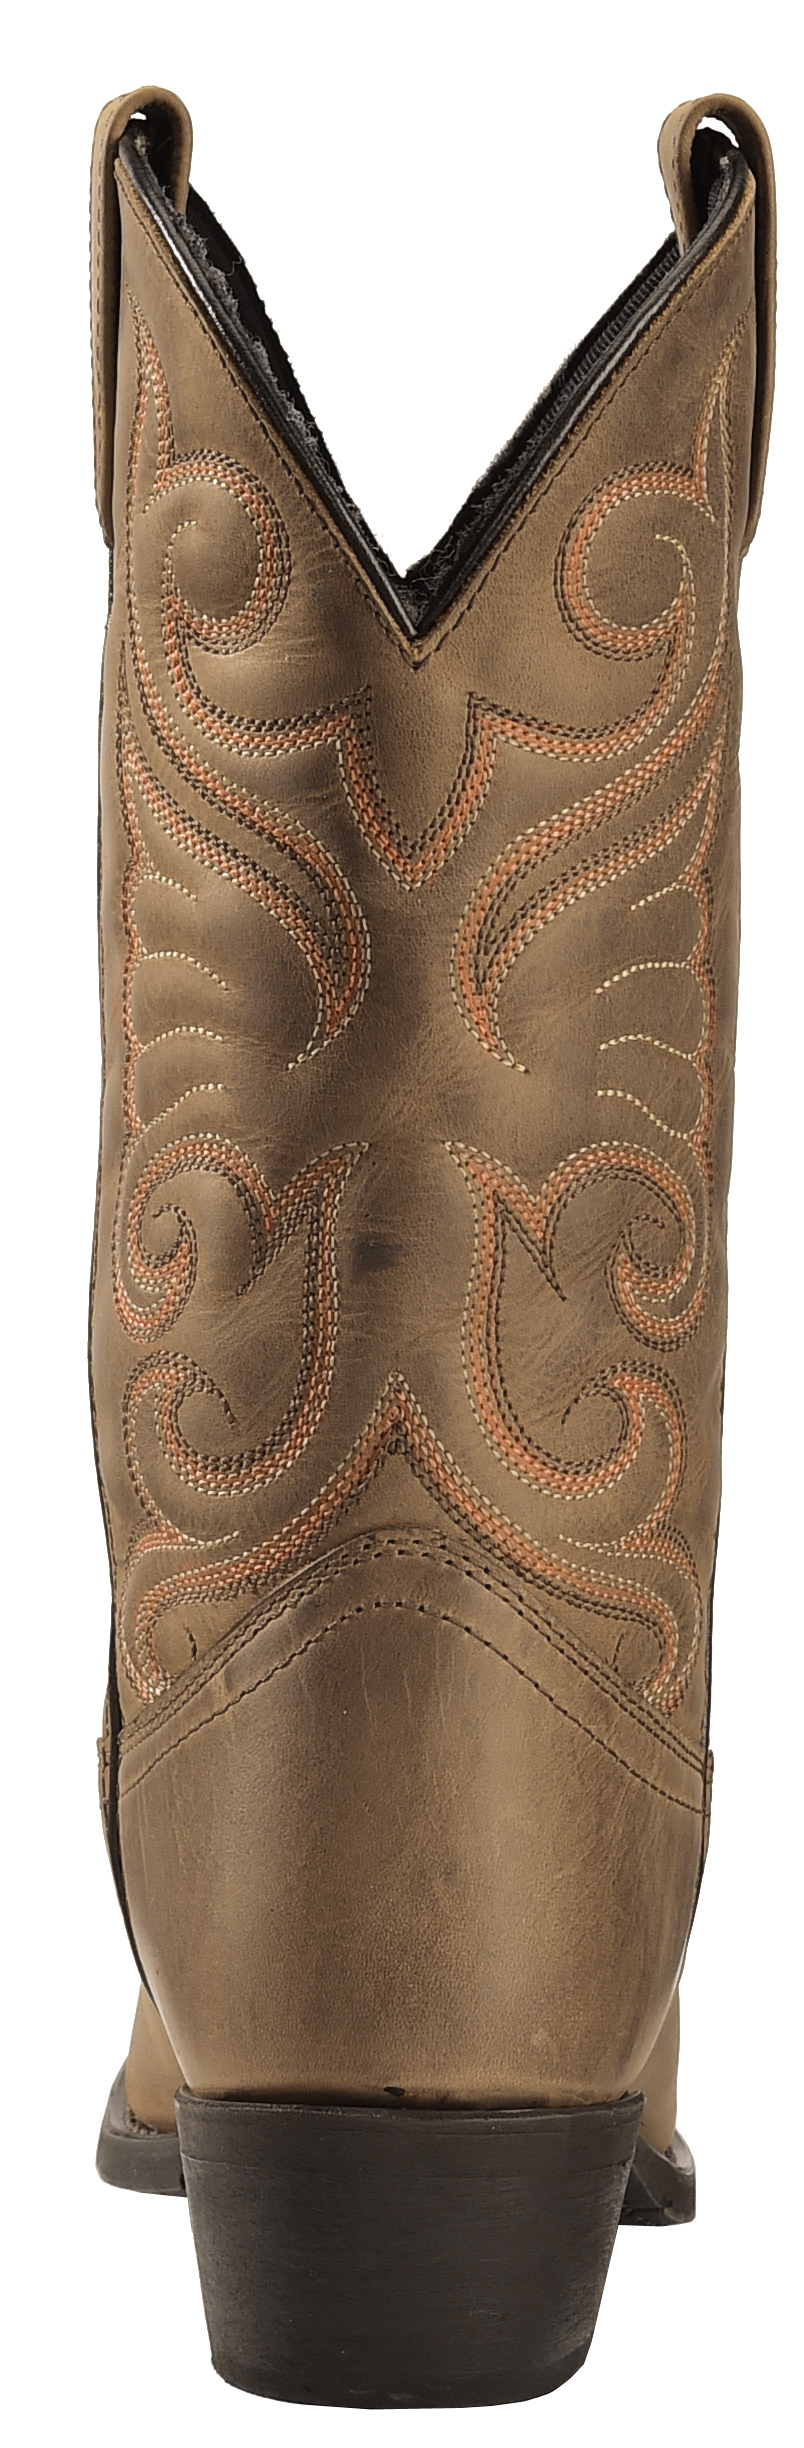 Laredo Bridget Cowgirl Boots - Round Toe - Country Outfitter